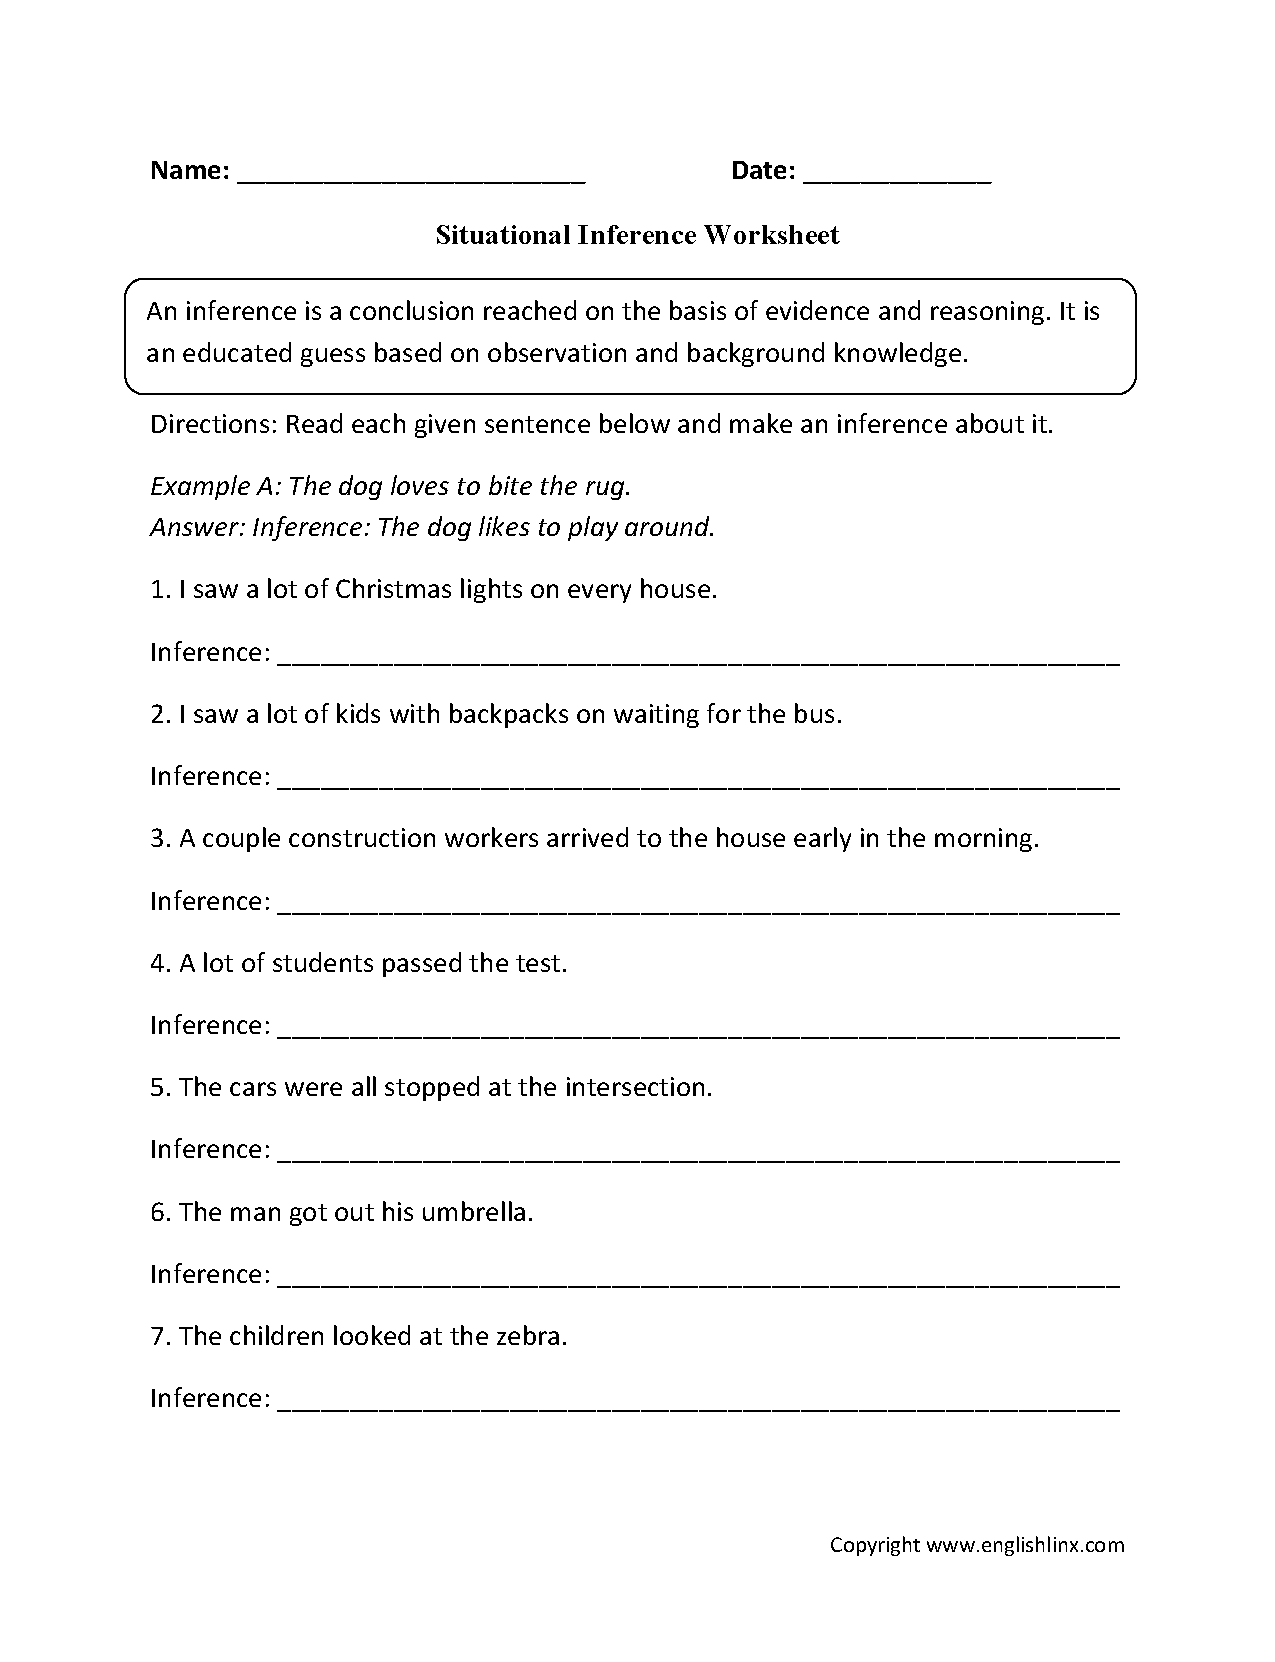 Situational Inference Worksheets